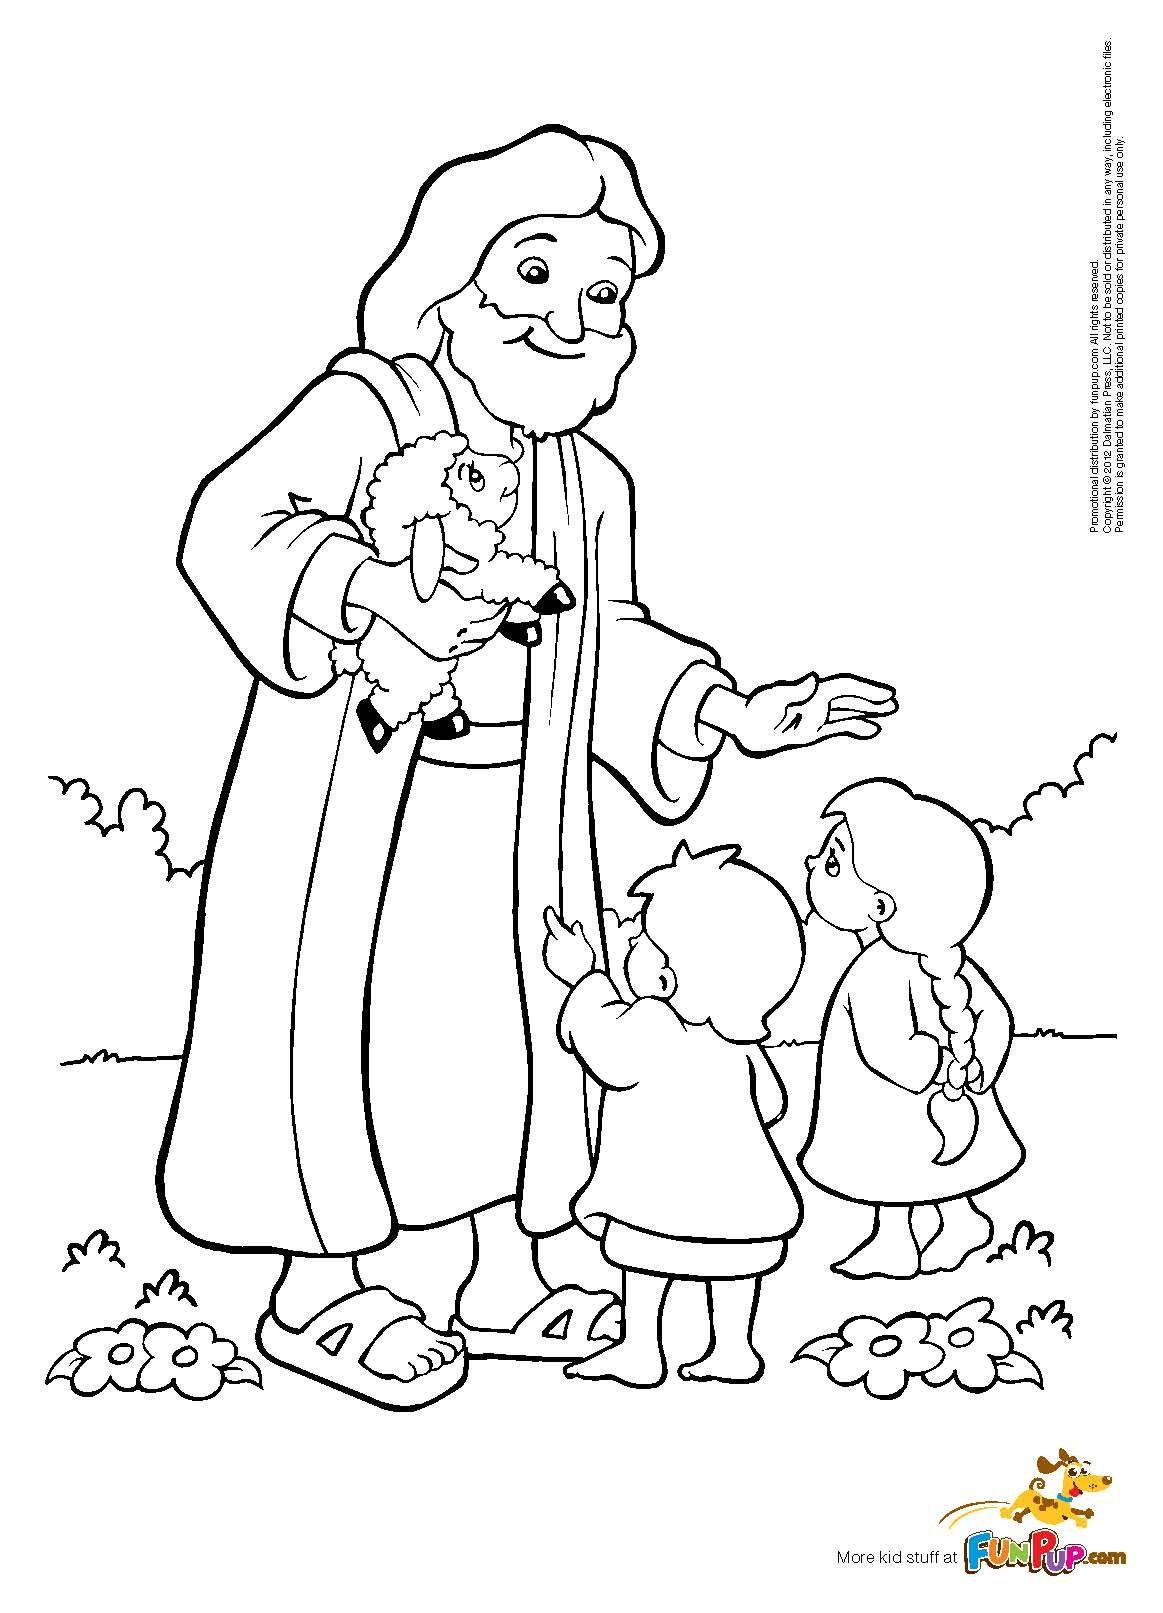 happy birthday jesus coloring pages free online printable coloring pages sheets for kids get the latest free happy birthday jesus coloring pages images - Jesus Children Coloring Pages